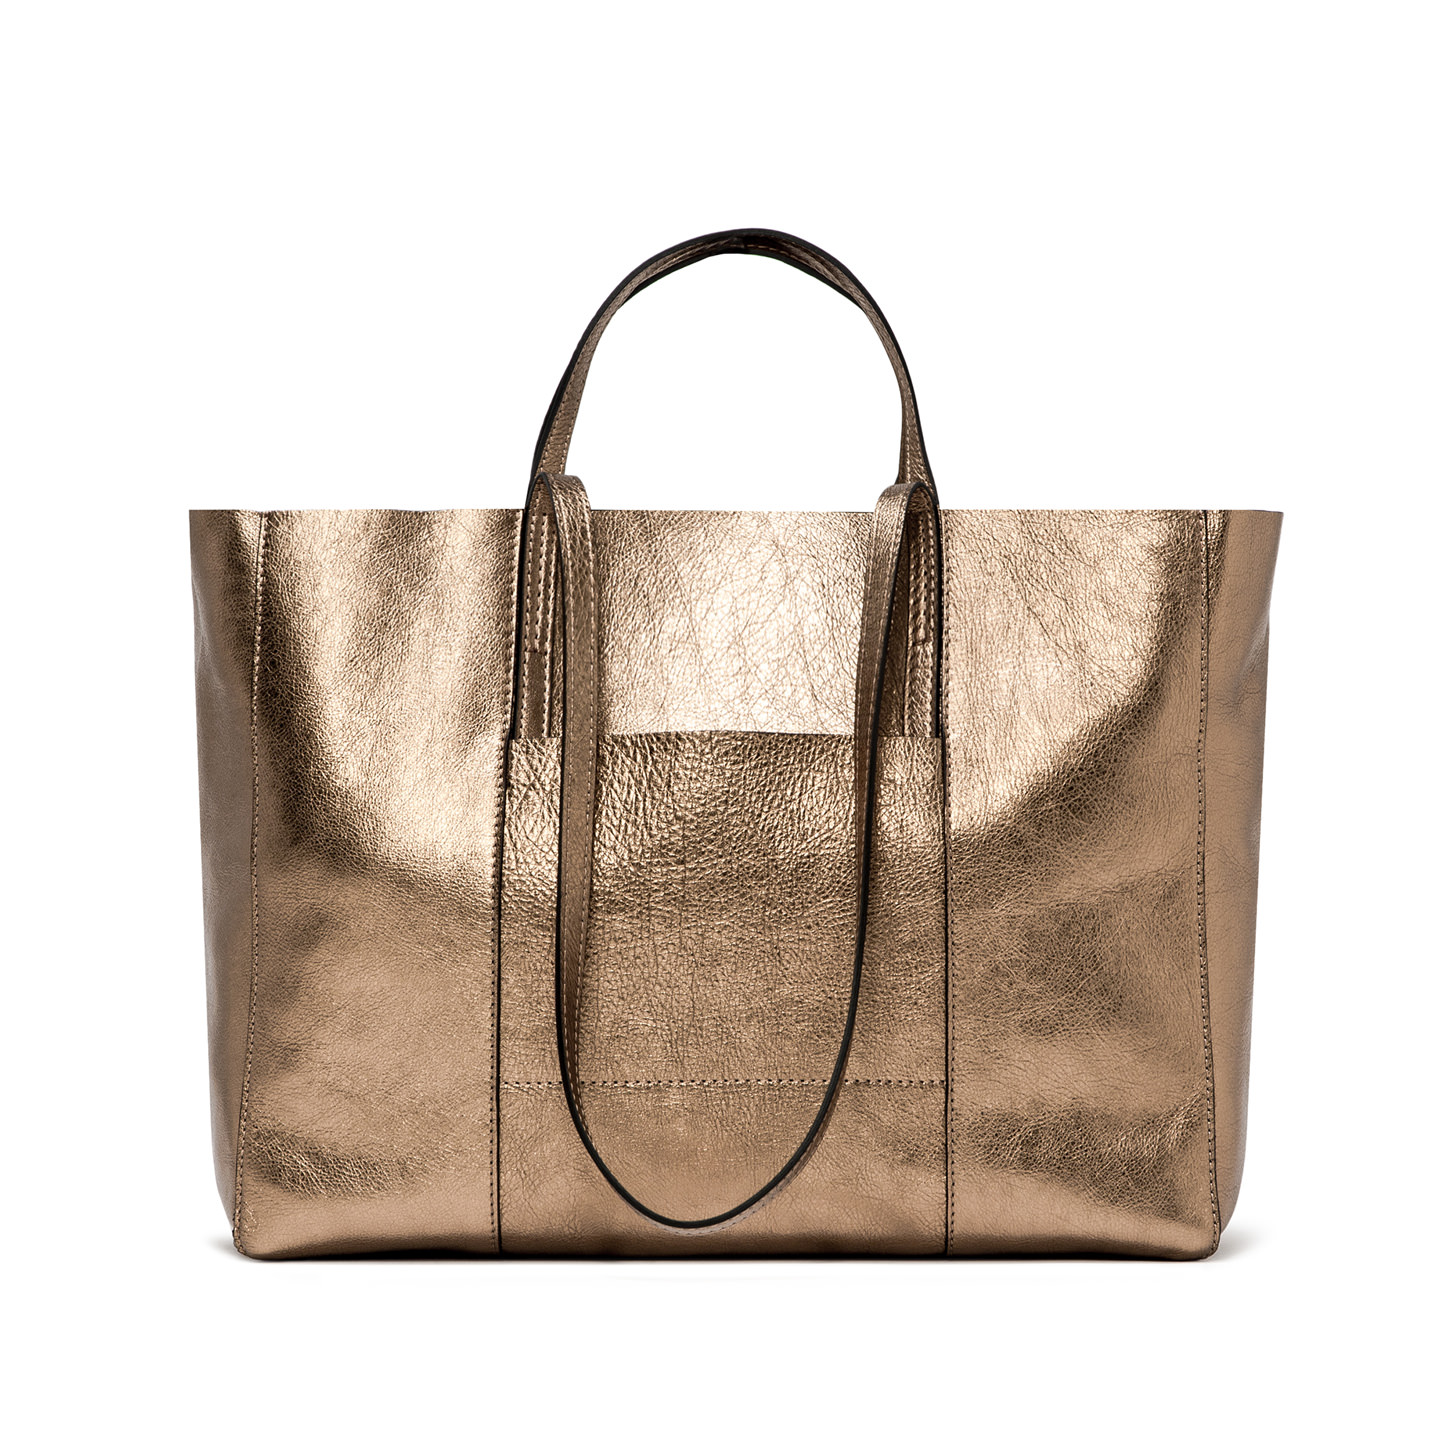 GIANNI CHIARINI: SUPERLIGHT LARGE CHAMPAGNE SHOPPING BAG